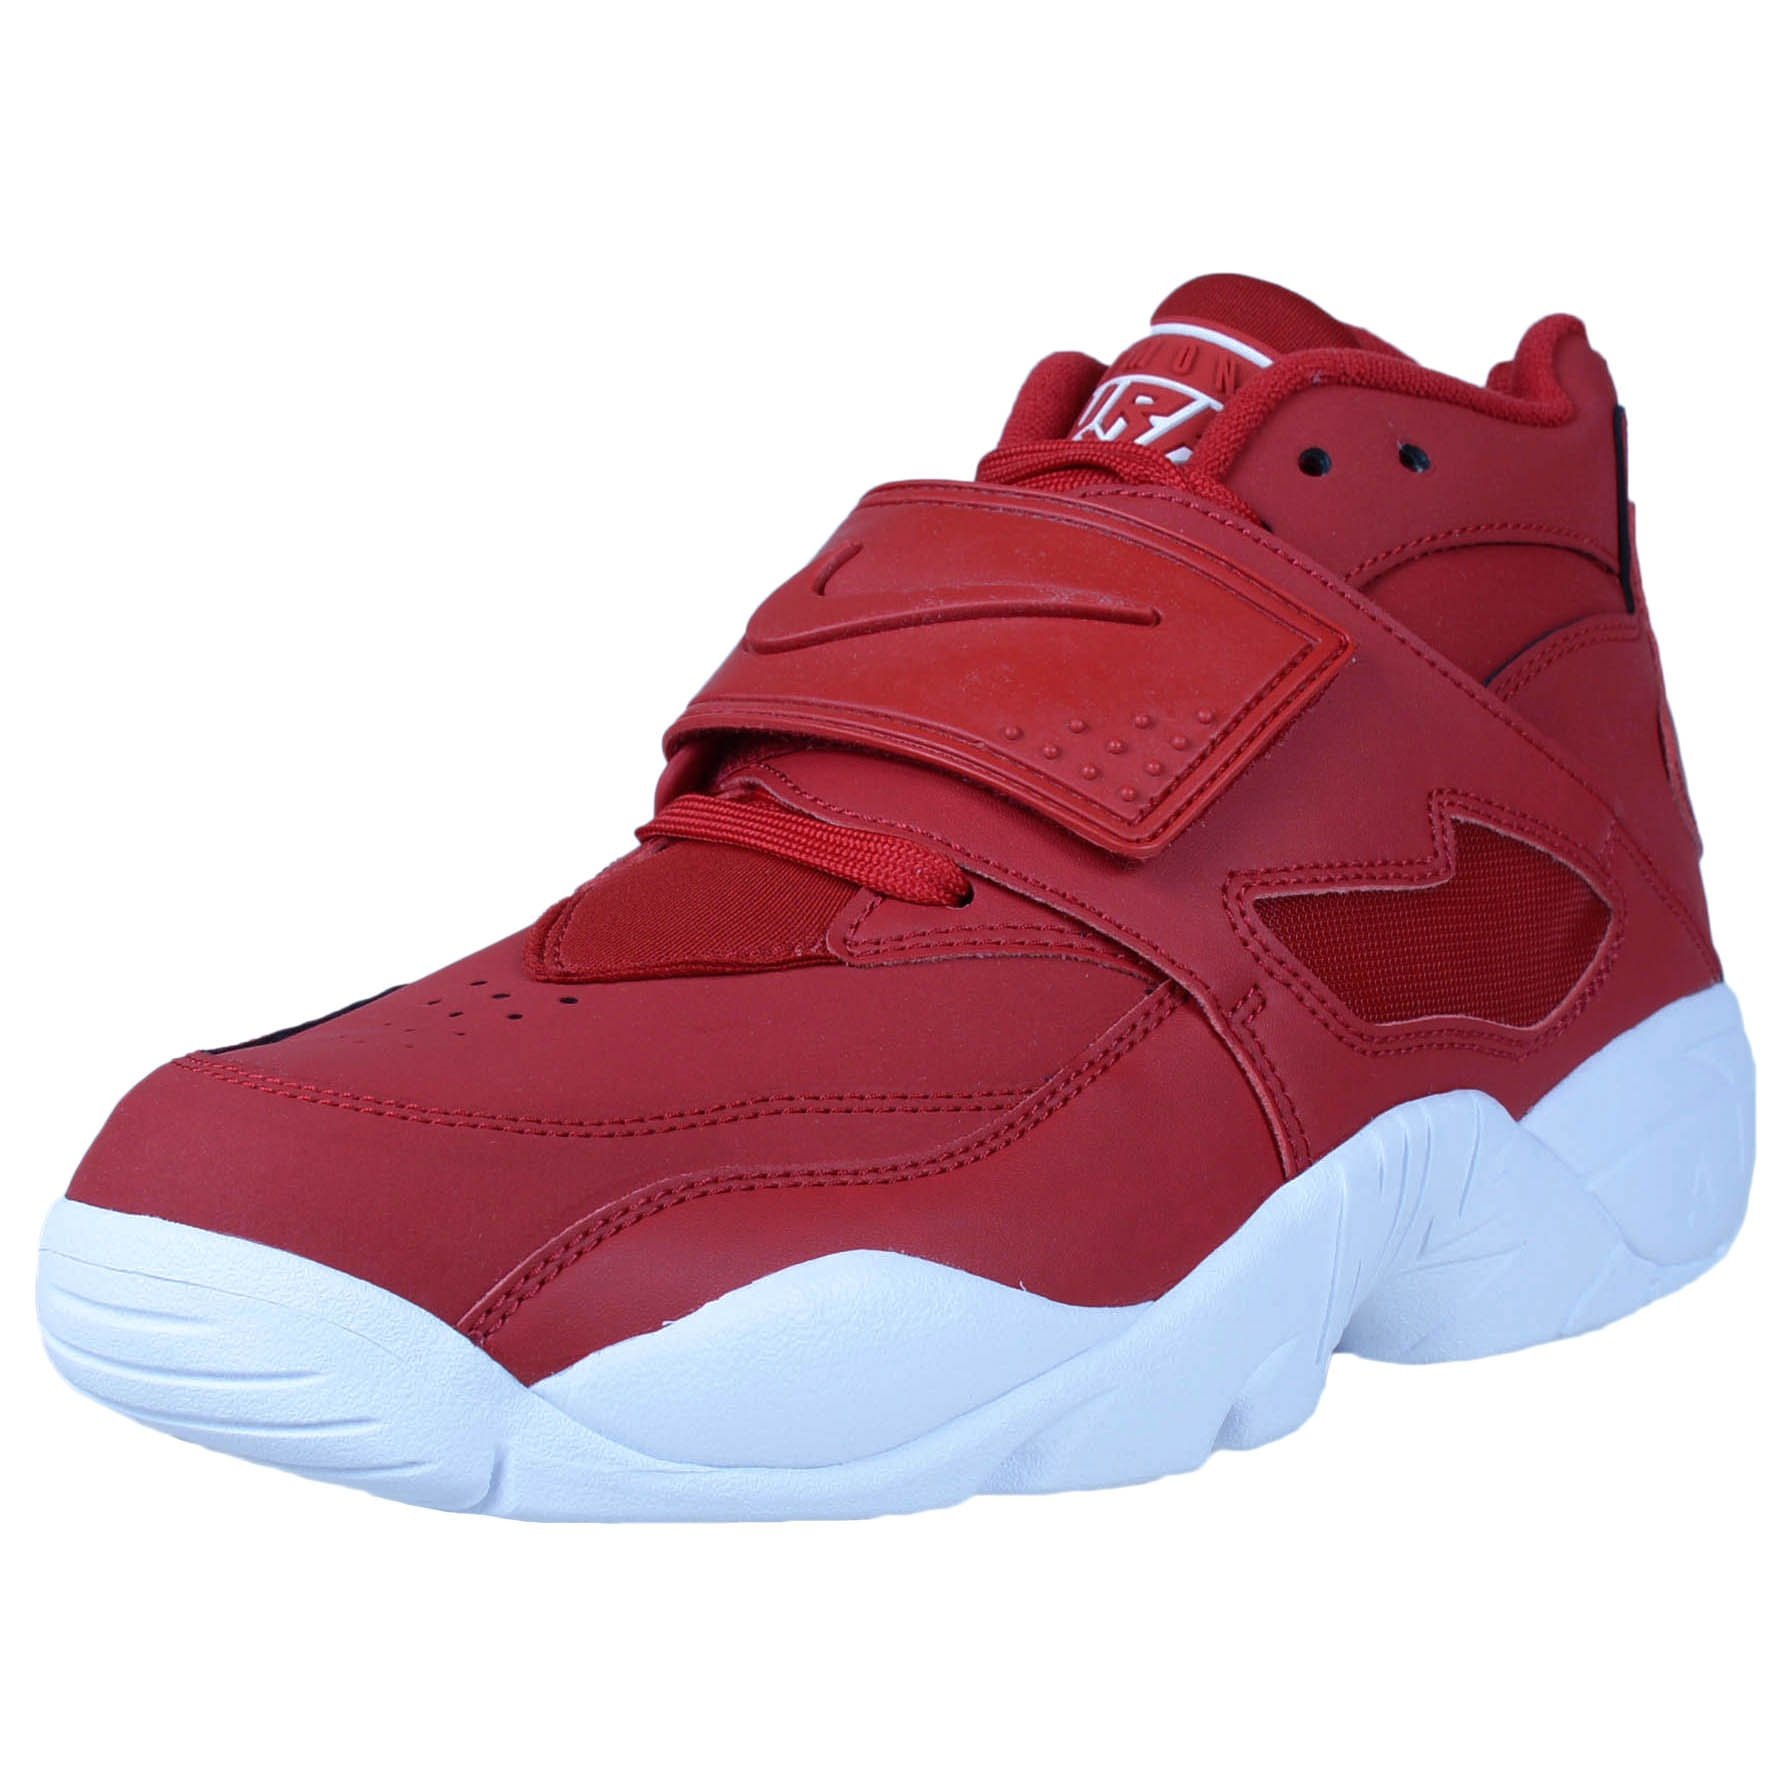 Nike Men's Air Diamond Turf Deion Sanders Gym Red/Gym Red-White 309434-600 Shoe 11 M US Men by Nike